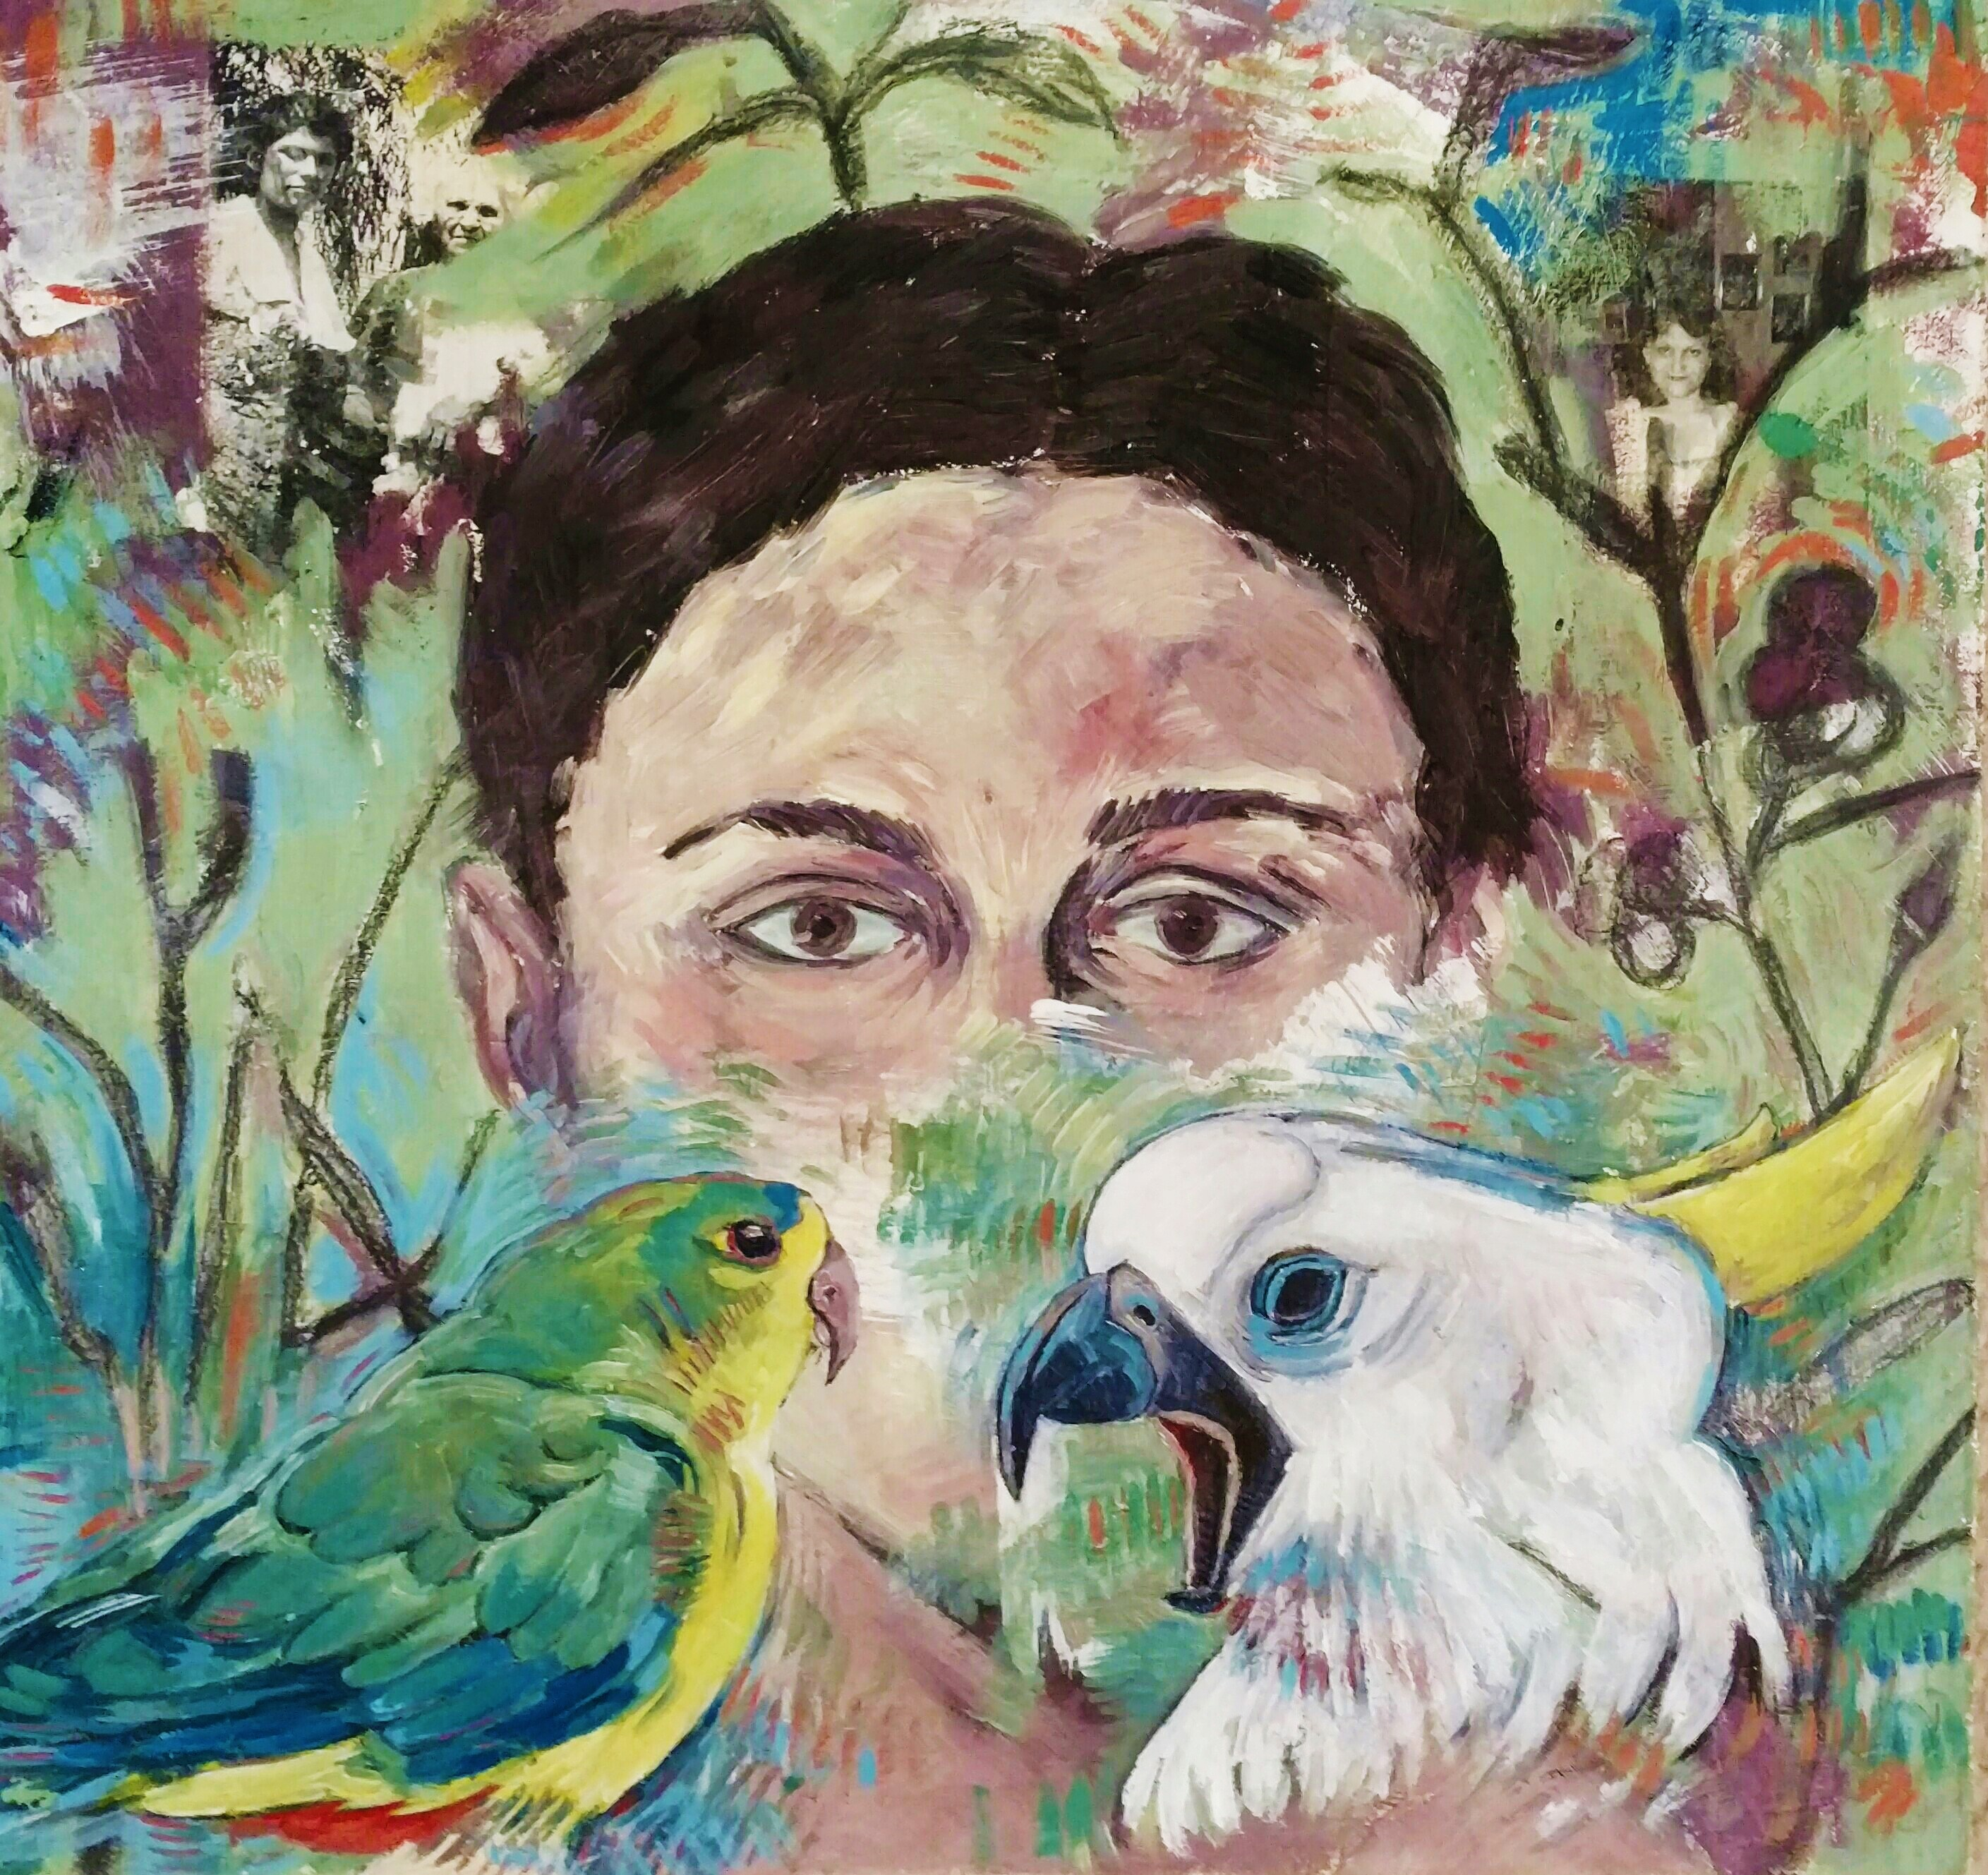 Self Portrait with Birds II